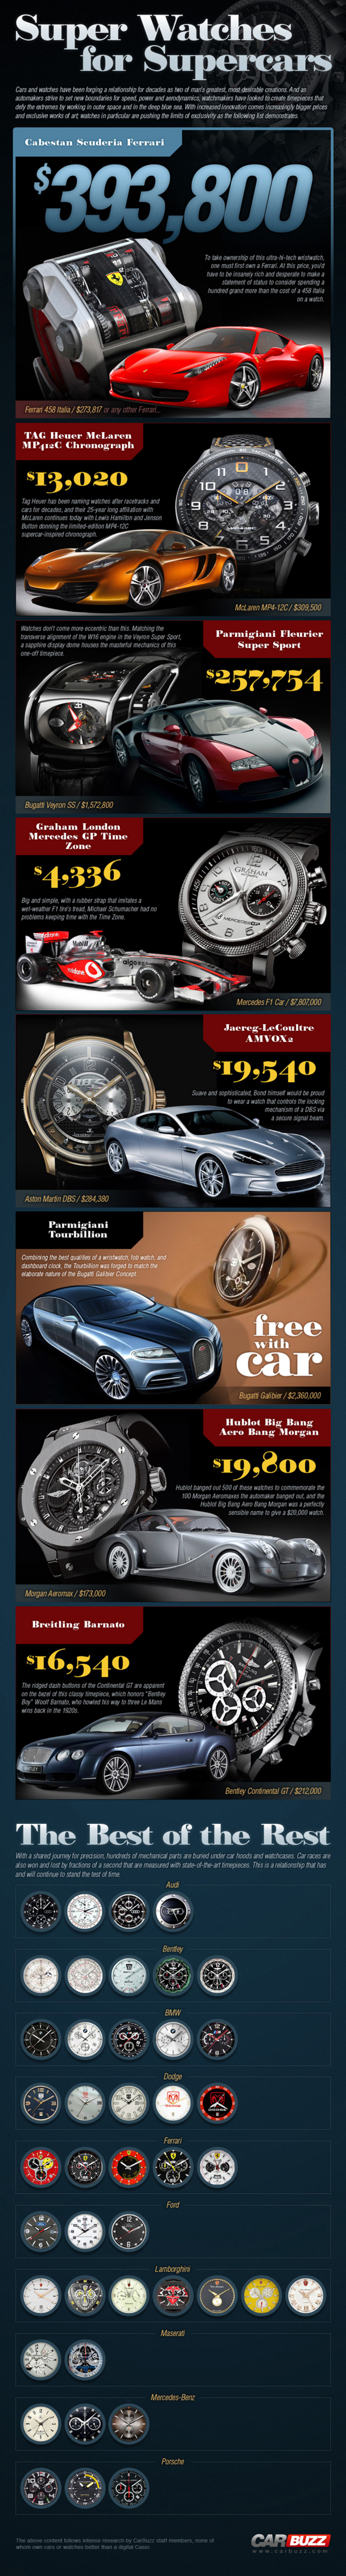 These Insanely Expensive Ferrari And Bugatti Watches Cost More Than Most Cars Infographic